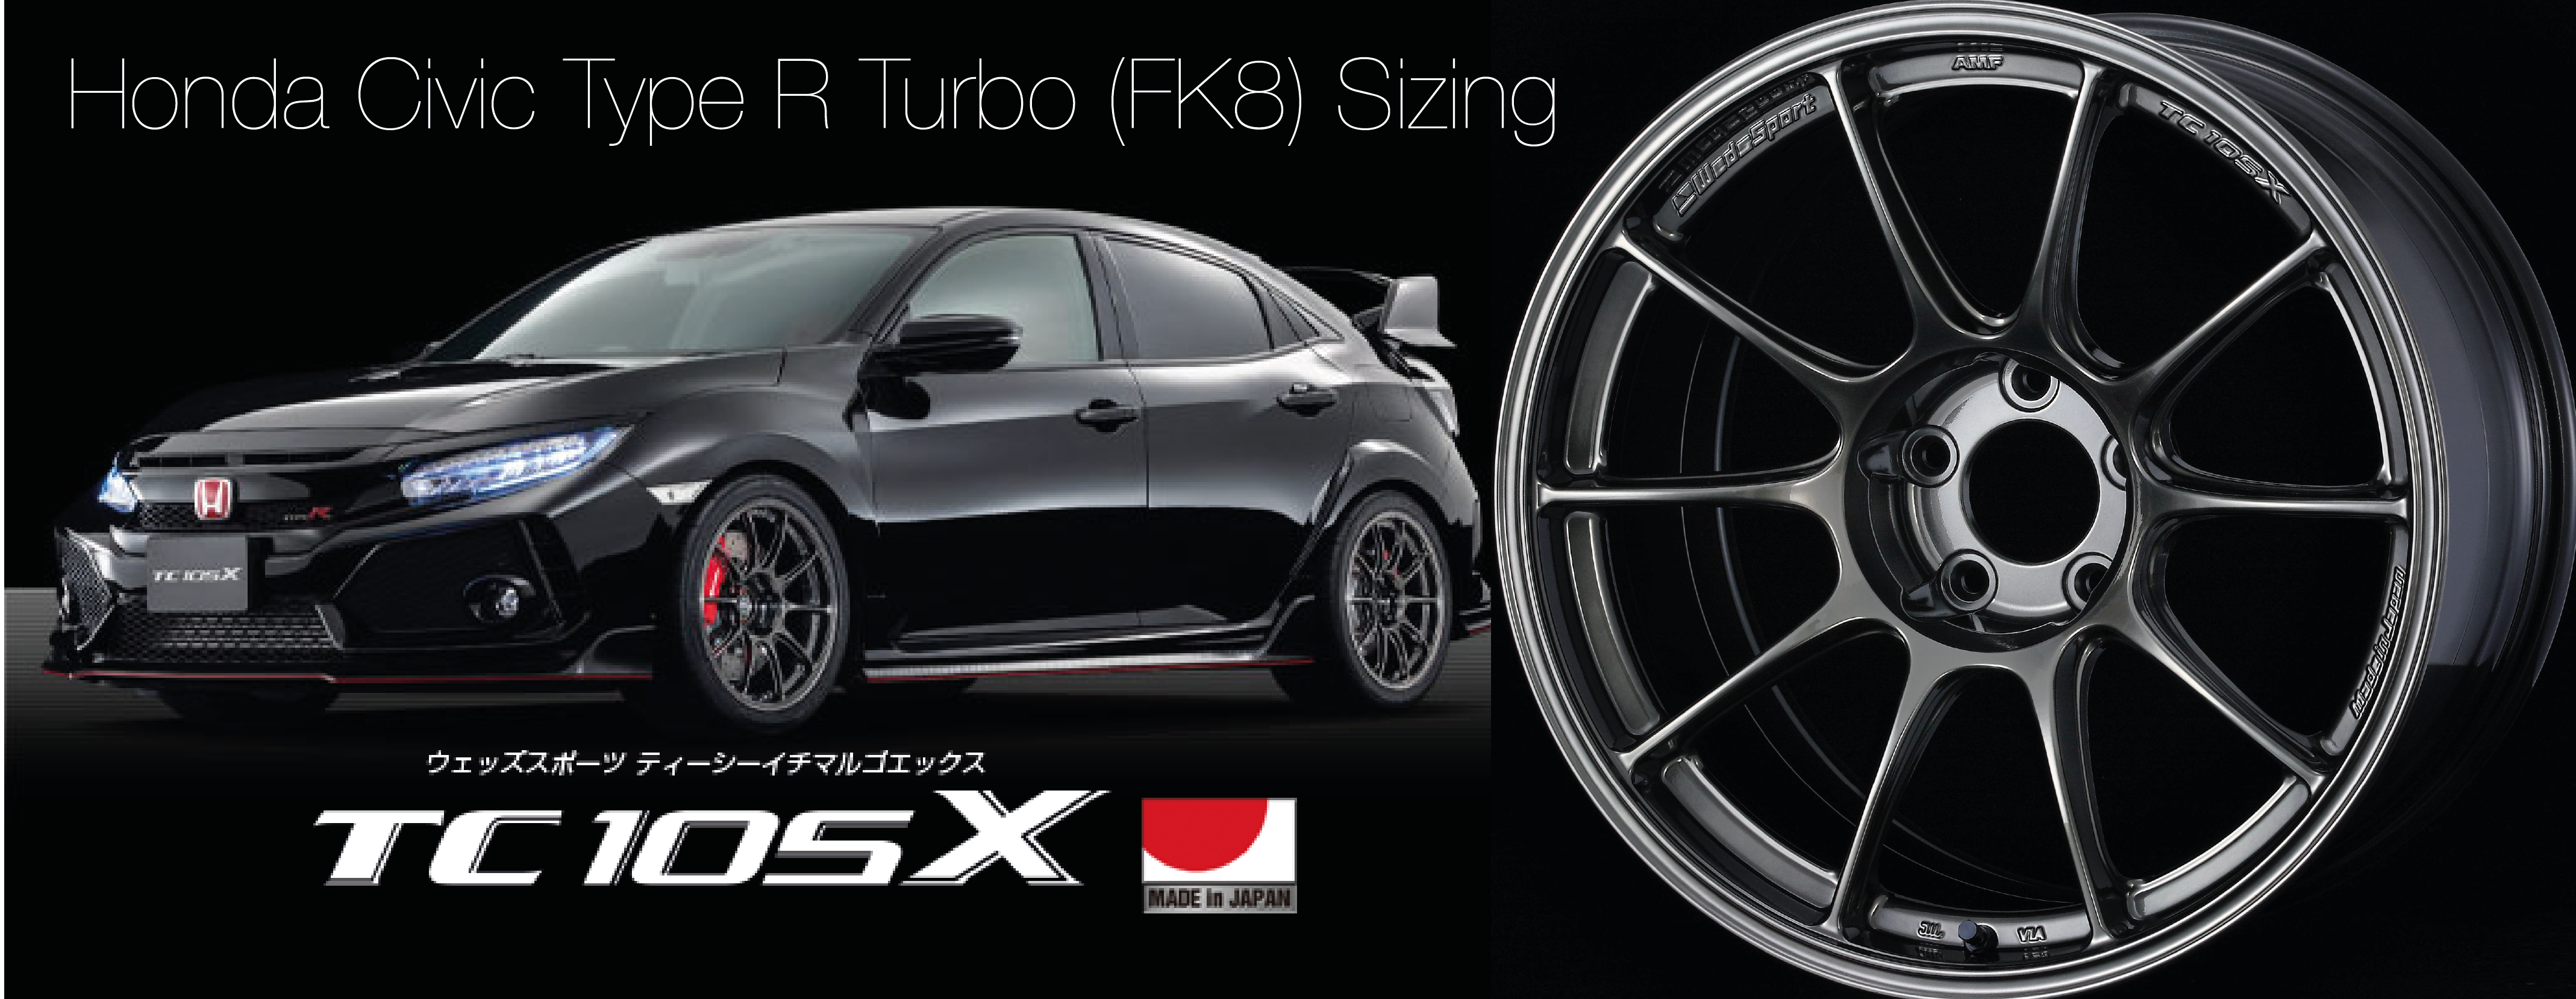 Wedsport TC105X for Honda Civic Type R FK8 with adapted 18inch racing sizes